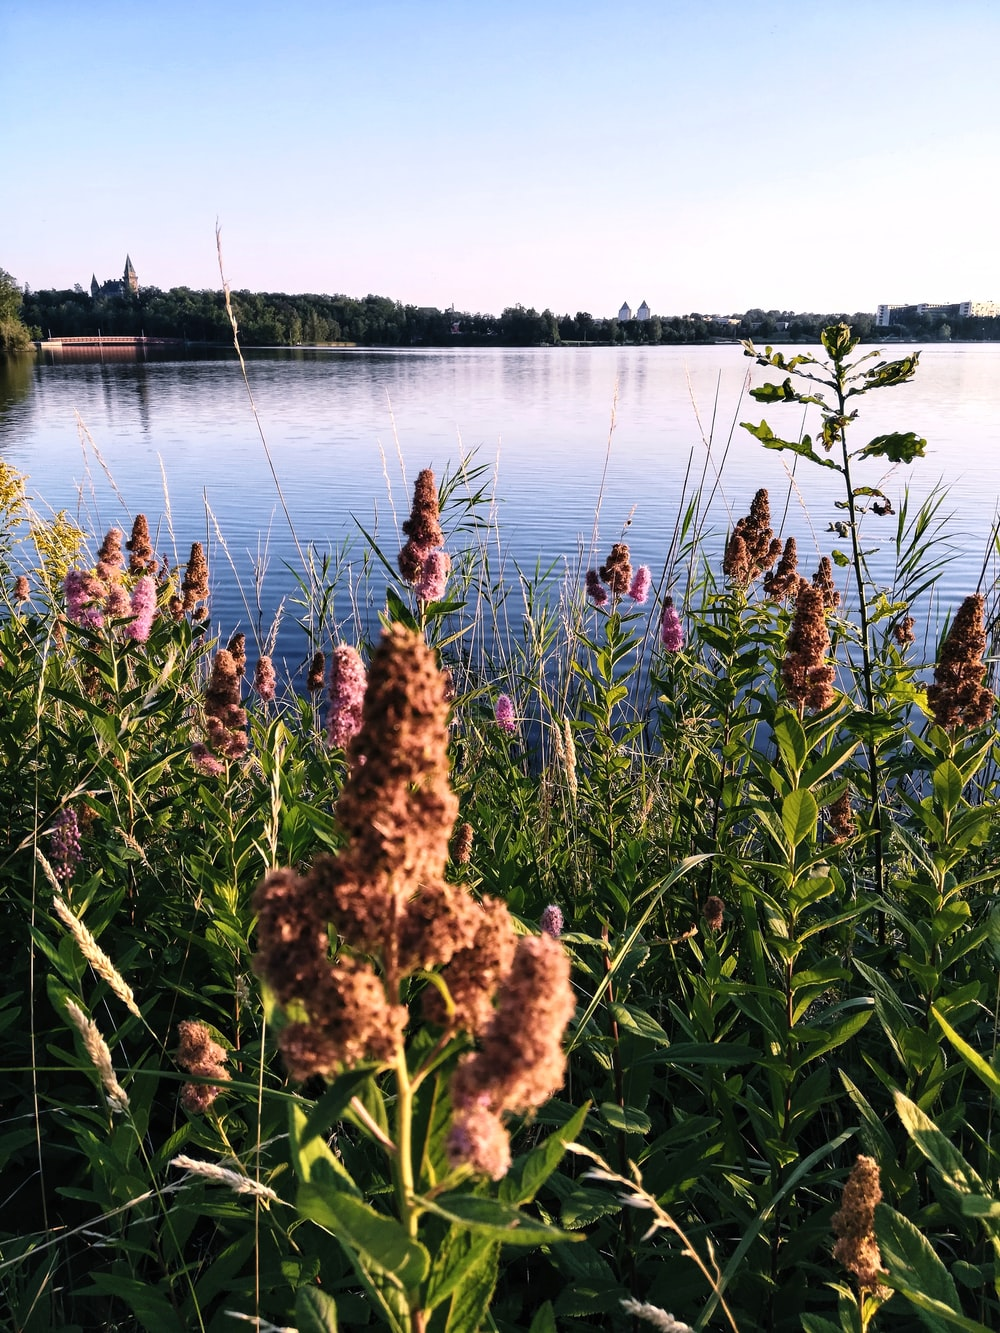 brown flowers near body of water during daytime